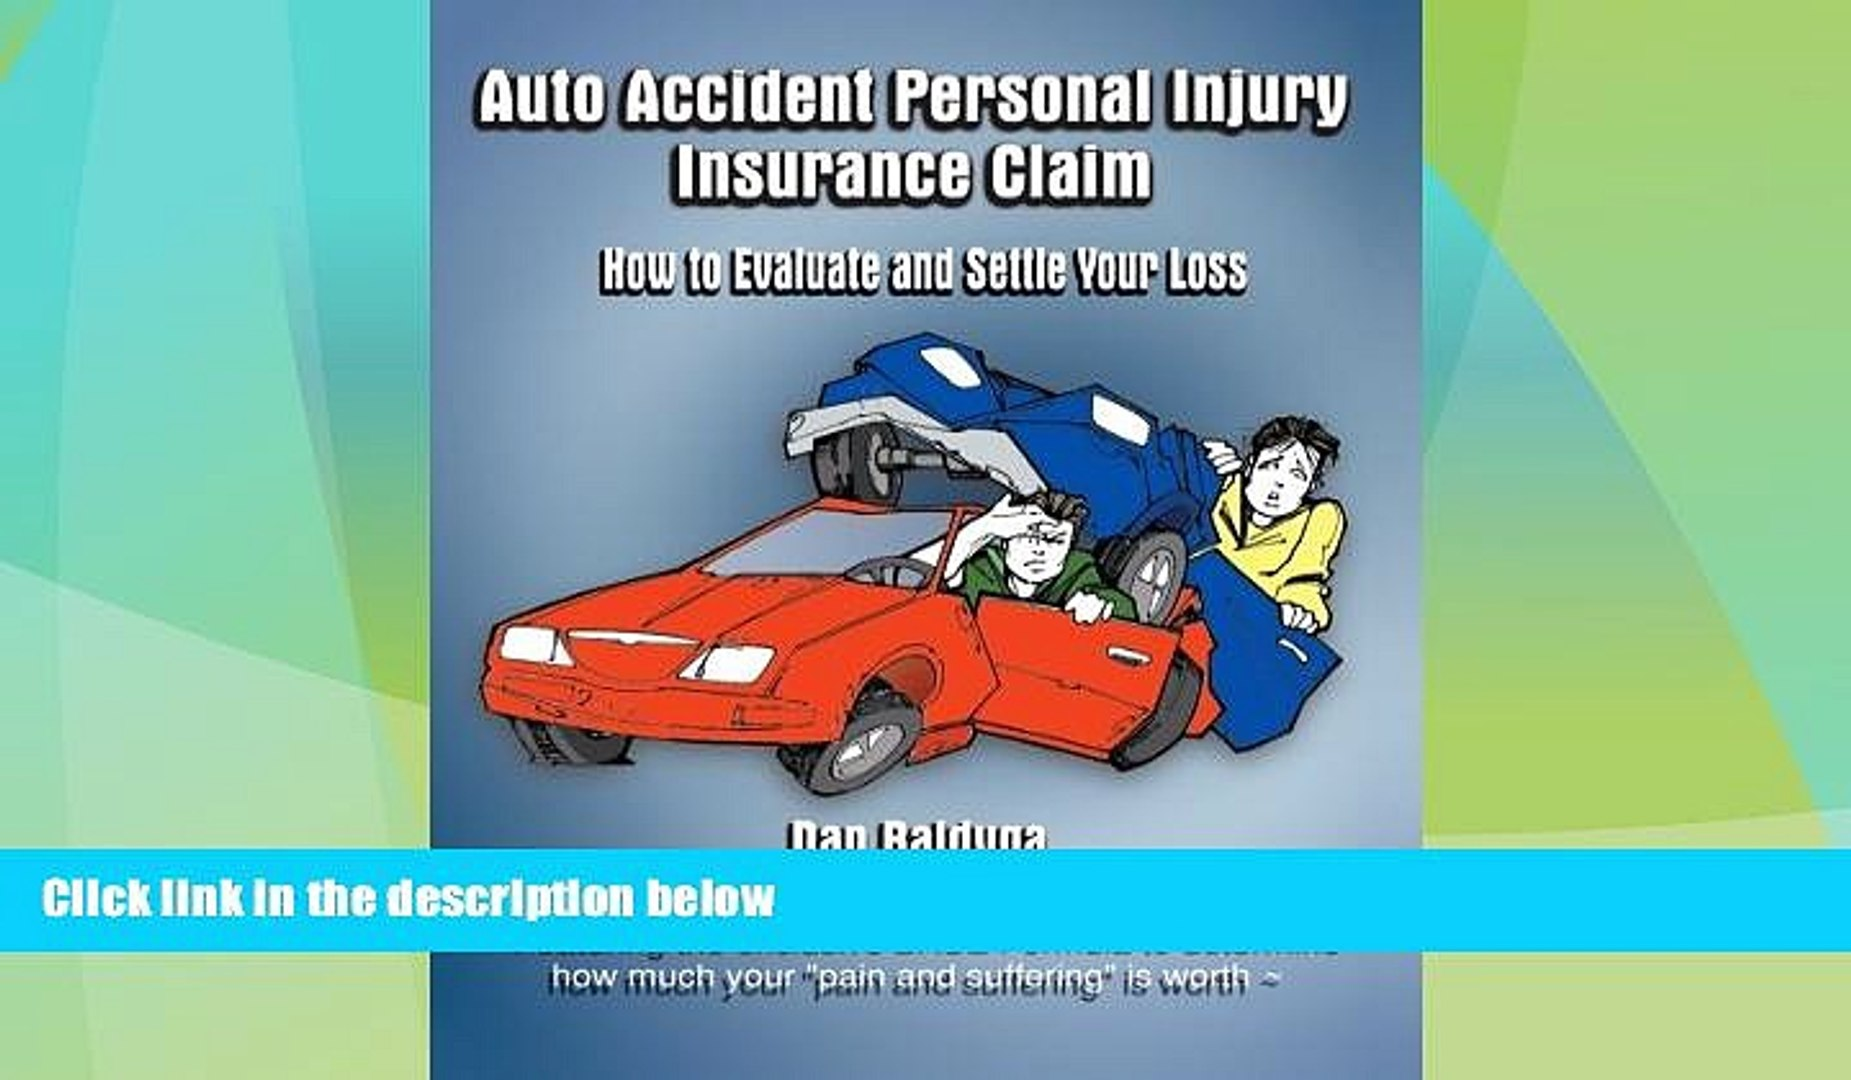 Auto Accident Personal Injury Insurance Claim How to Evaluate and Settle Your Loss